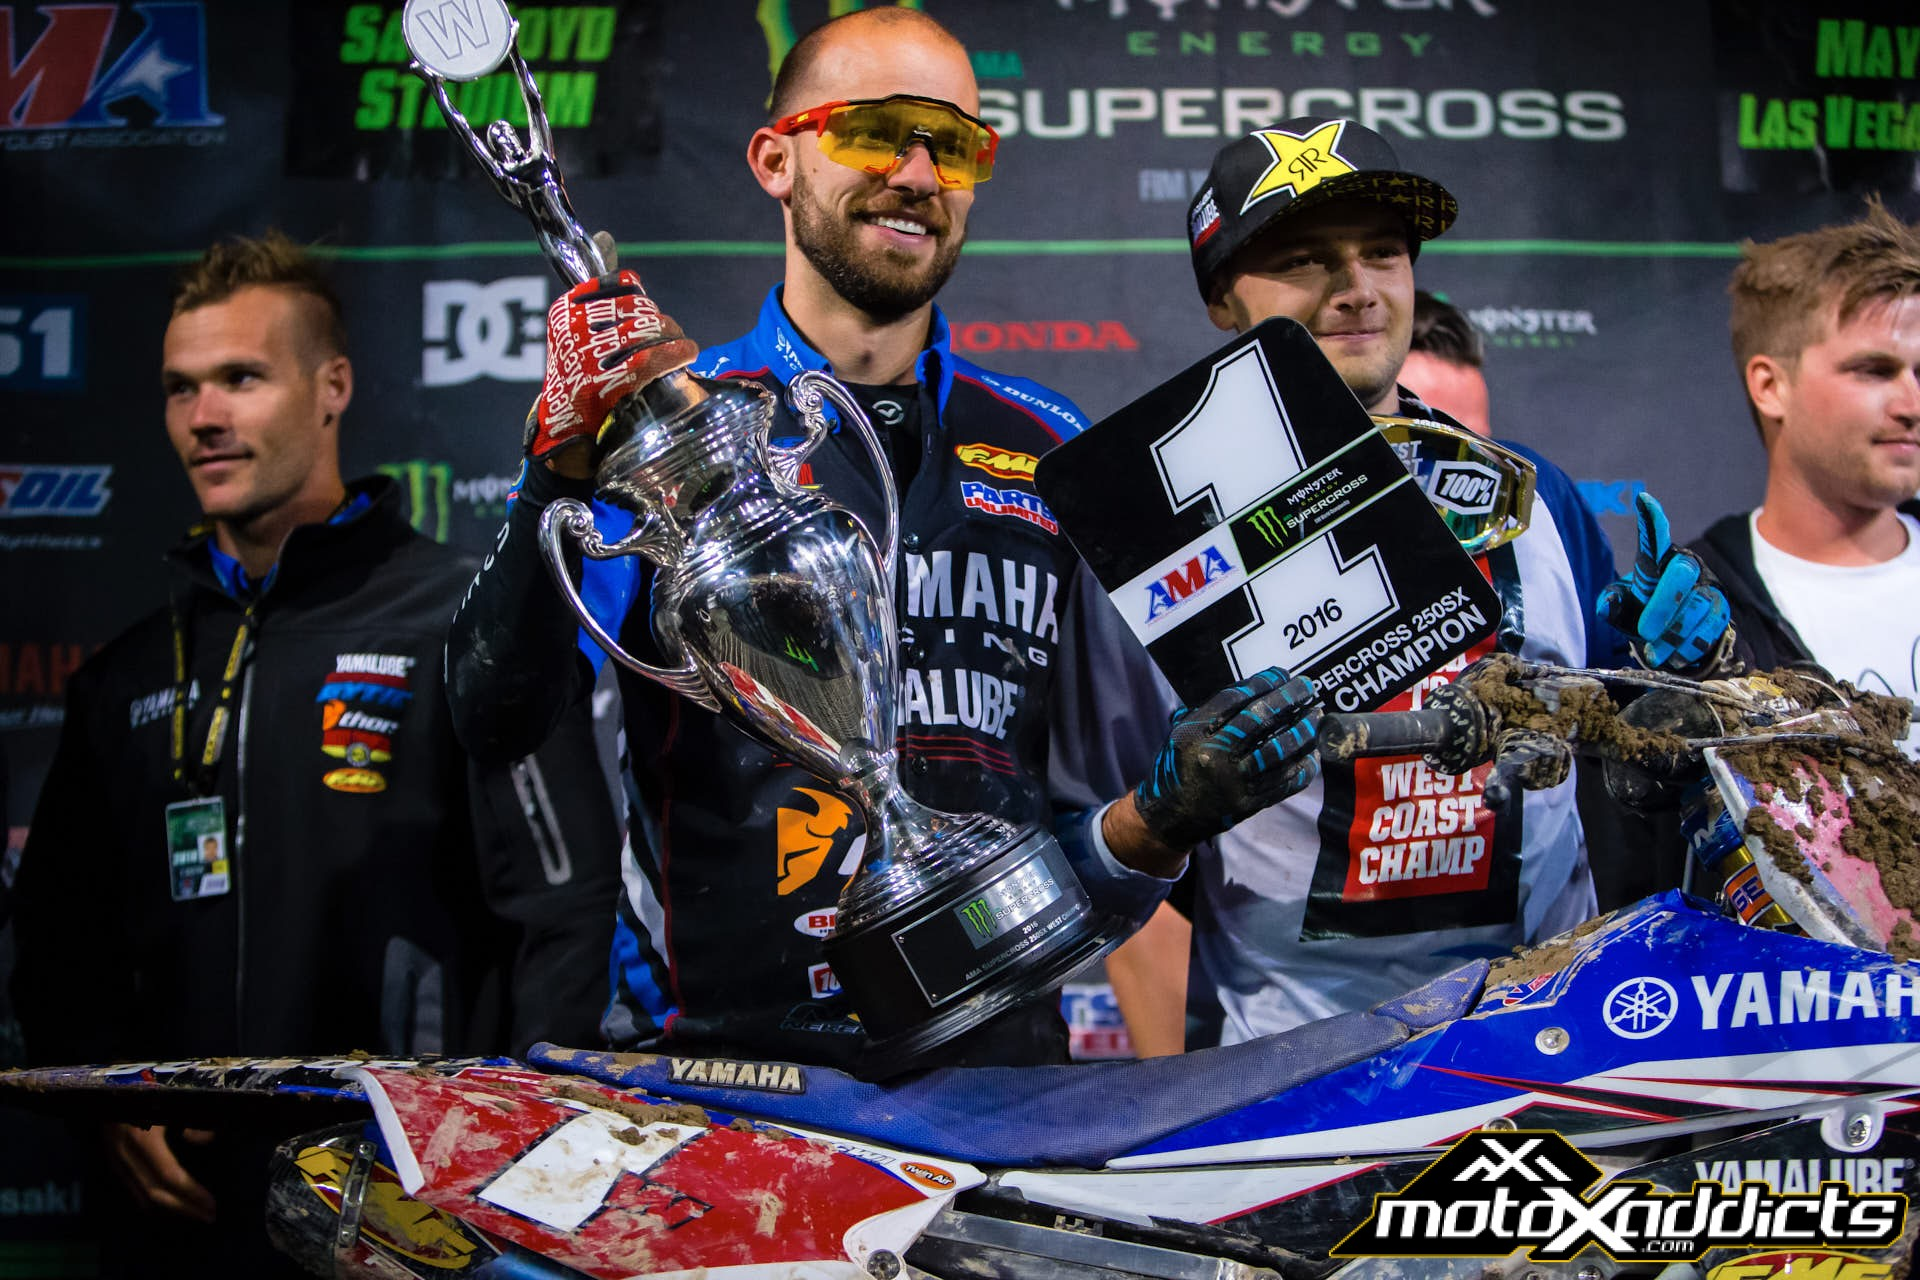 Cooper Webb capped off his 250SX career with back-to-back Championships in the west. He is one of six riders to win two Western Regional Championships. Photo by: Hoppenworld